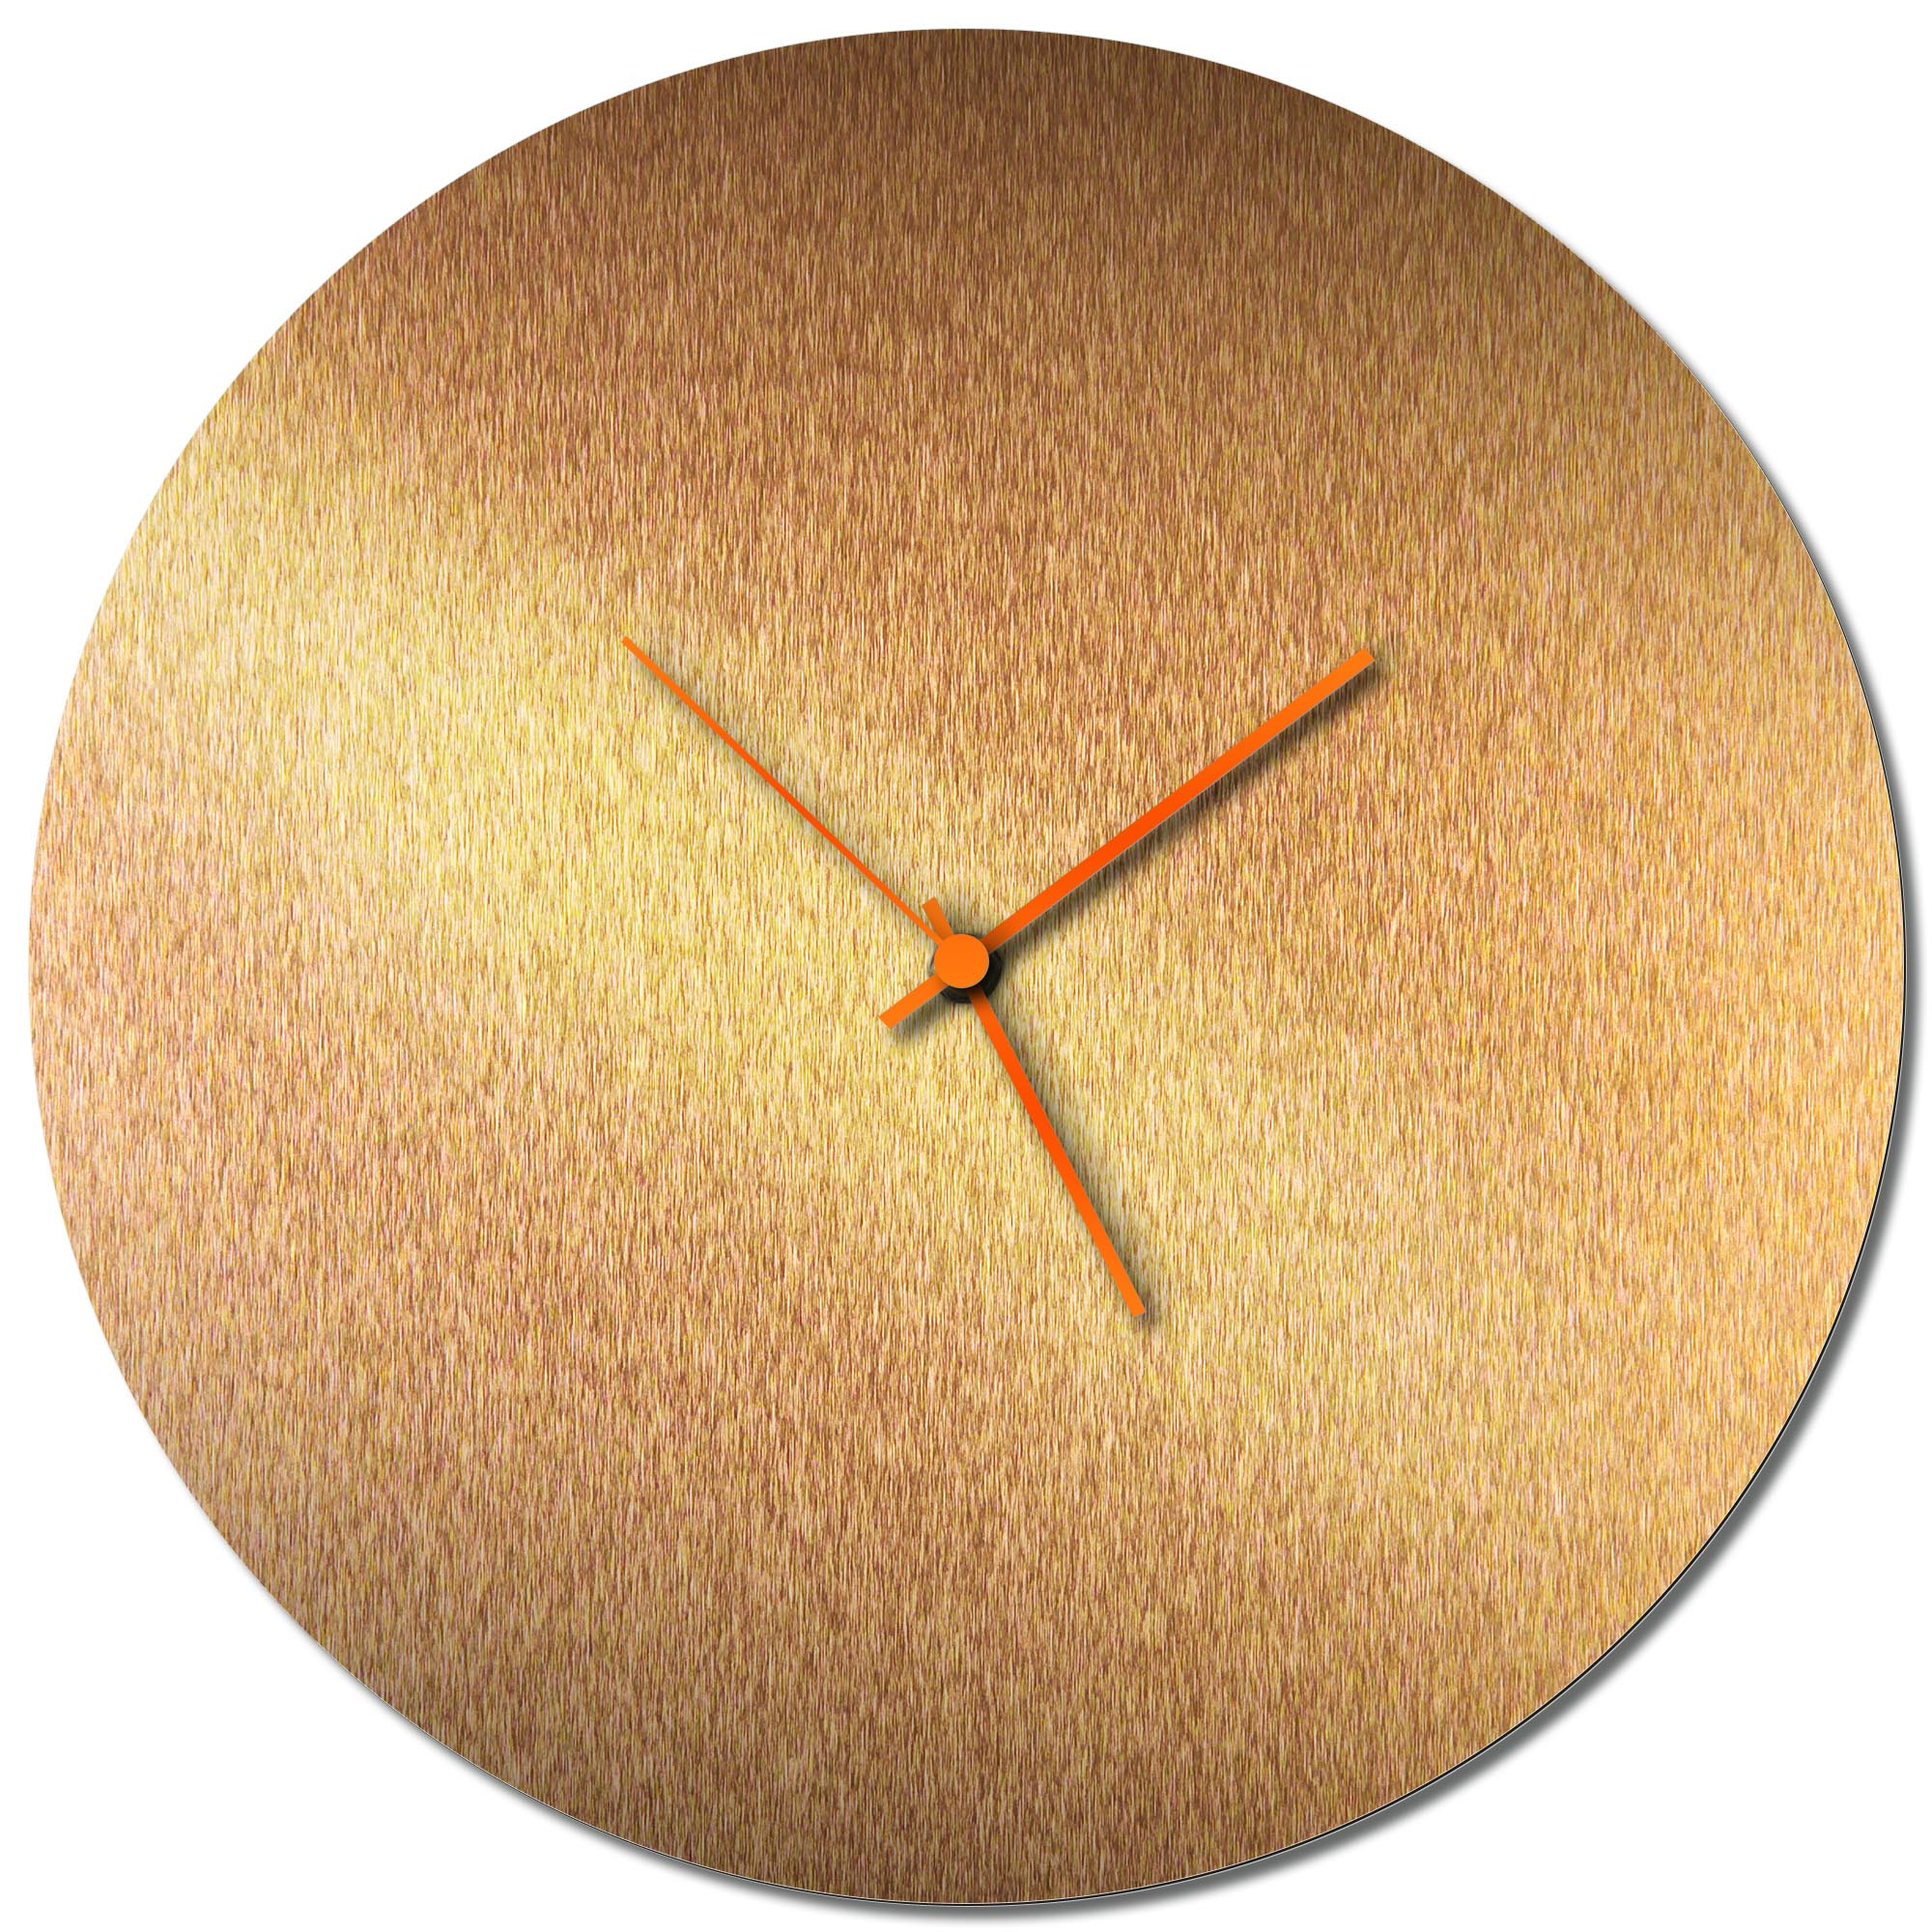 Adam Schwoeppe 'Bronzesmith Circle Clock Orange' Midcentury Modern Style Wall Clock